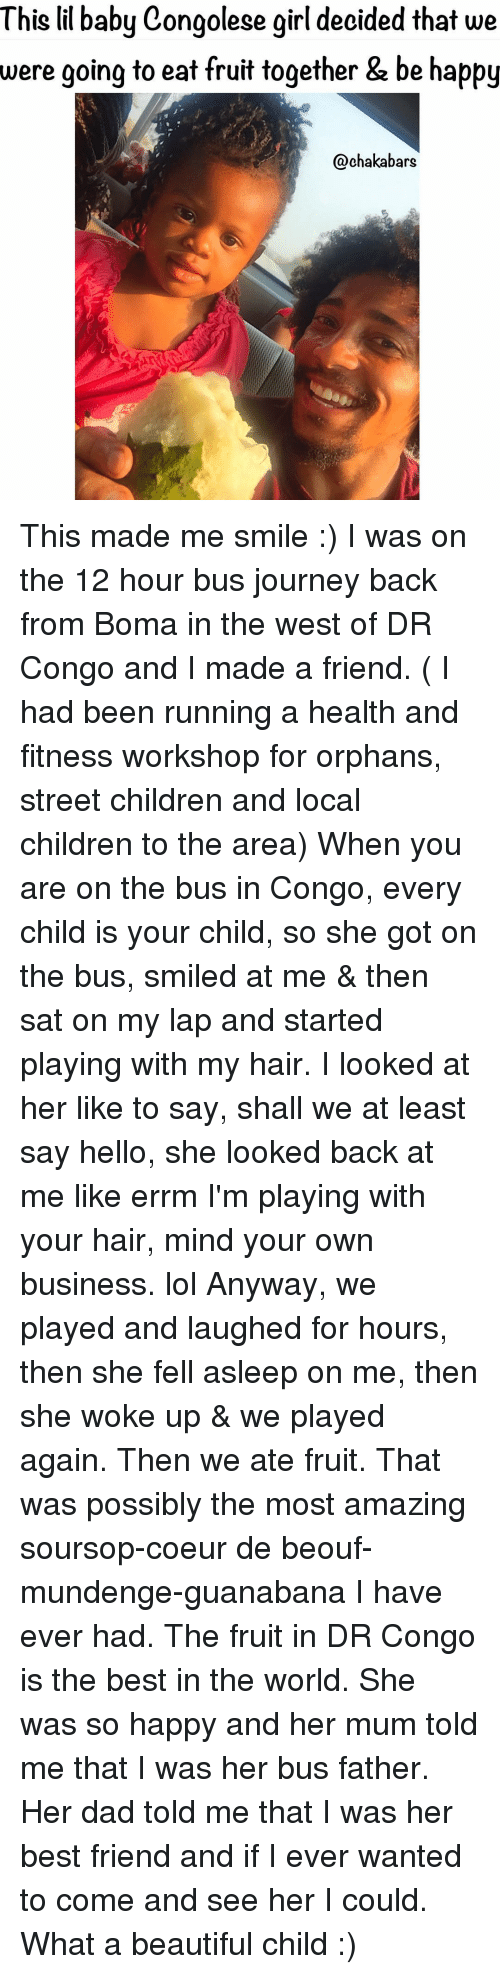 Look Back At Me: This lil baby Congolese girl decided that we  were going to eat fruit together &  be happy  @chakabars This made me smile :) I was on the 12 hour bus journey back from Boma in the west of DR Congo and I made a friend. ( I had been running a health and fitness workshop for orphans, street children and local children to the area) When you are on the bus in Congo, every child is your child, so she got on the bus, smiled at me & then sat on my lap and started playing with my hair. I looked at her like to say, shall we at least say hello, she looked back at me like errm I'm playing with your hair, mind your own business. lol Anyway, we played and laughed for hours, then she fell asleep on me, then she woke up & we played again. Then we ate fruit. That was possibly the most amazing soursop-coeur de beouf-mundenge-guanabana I have ever had. The fruit in DR Congo is the best in the world. She was so happy and her mum told me that I was her bus father. Her dad told me that I was her best friend and if I ever wanted to come and see her I could. What a beautiful child :)